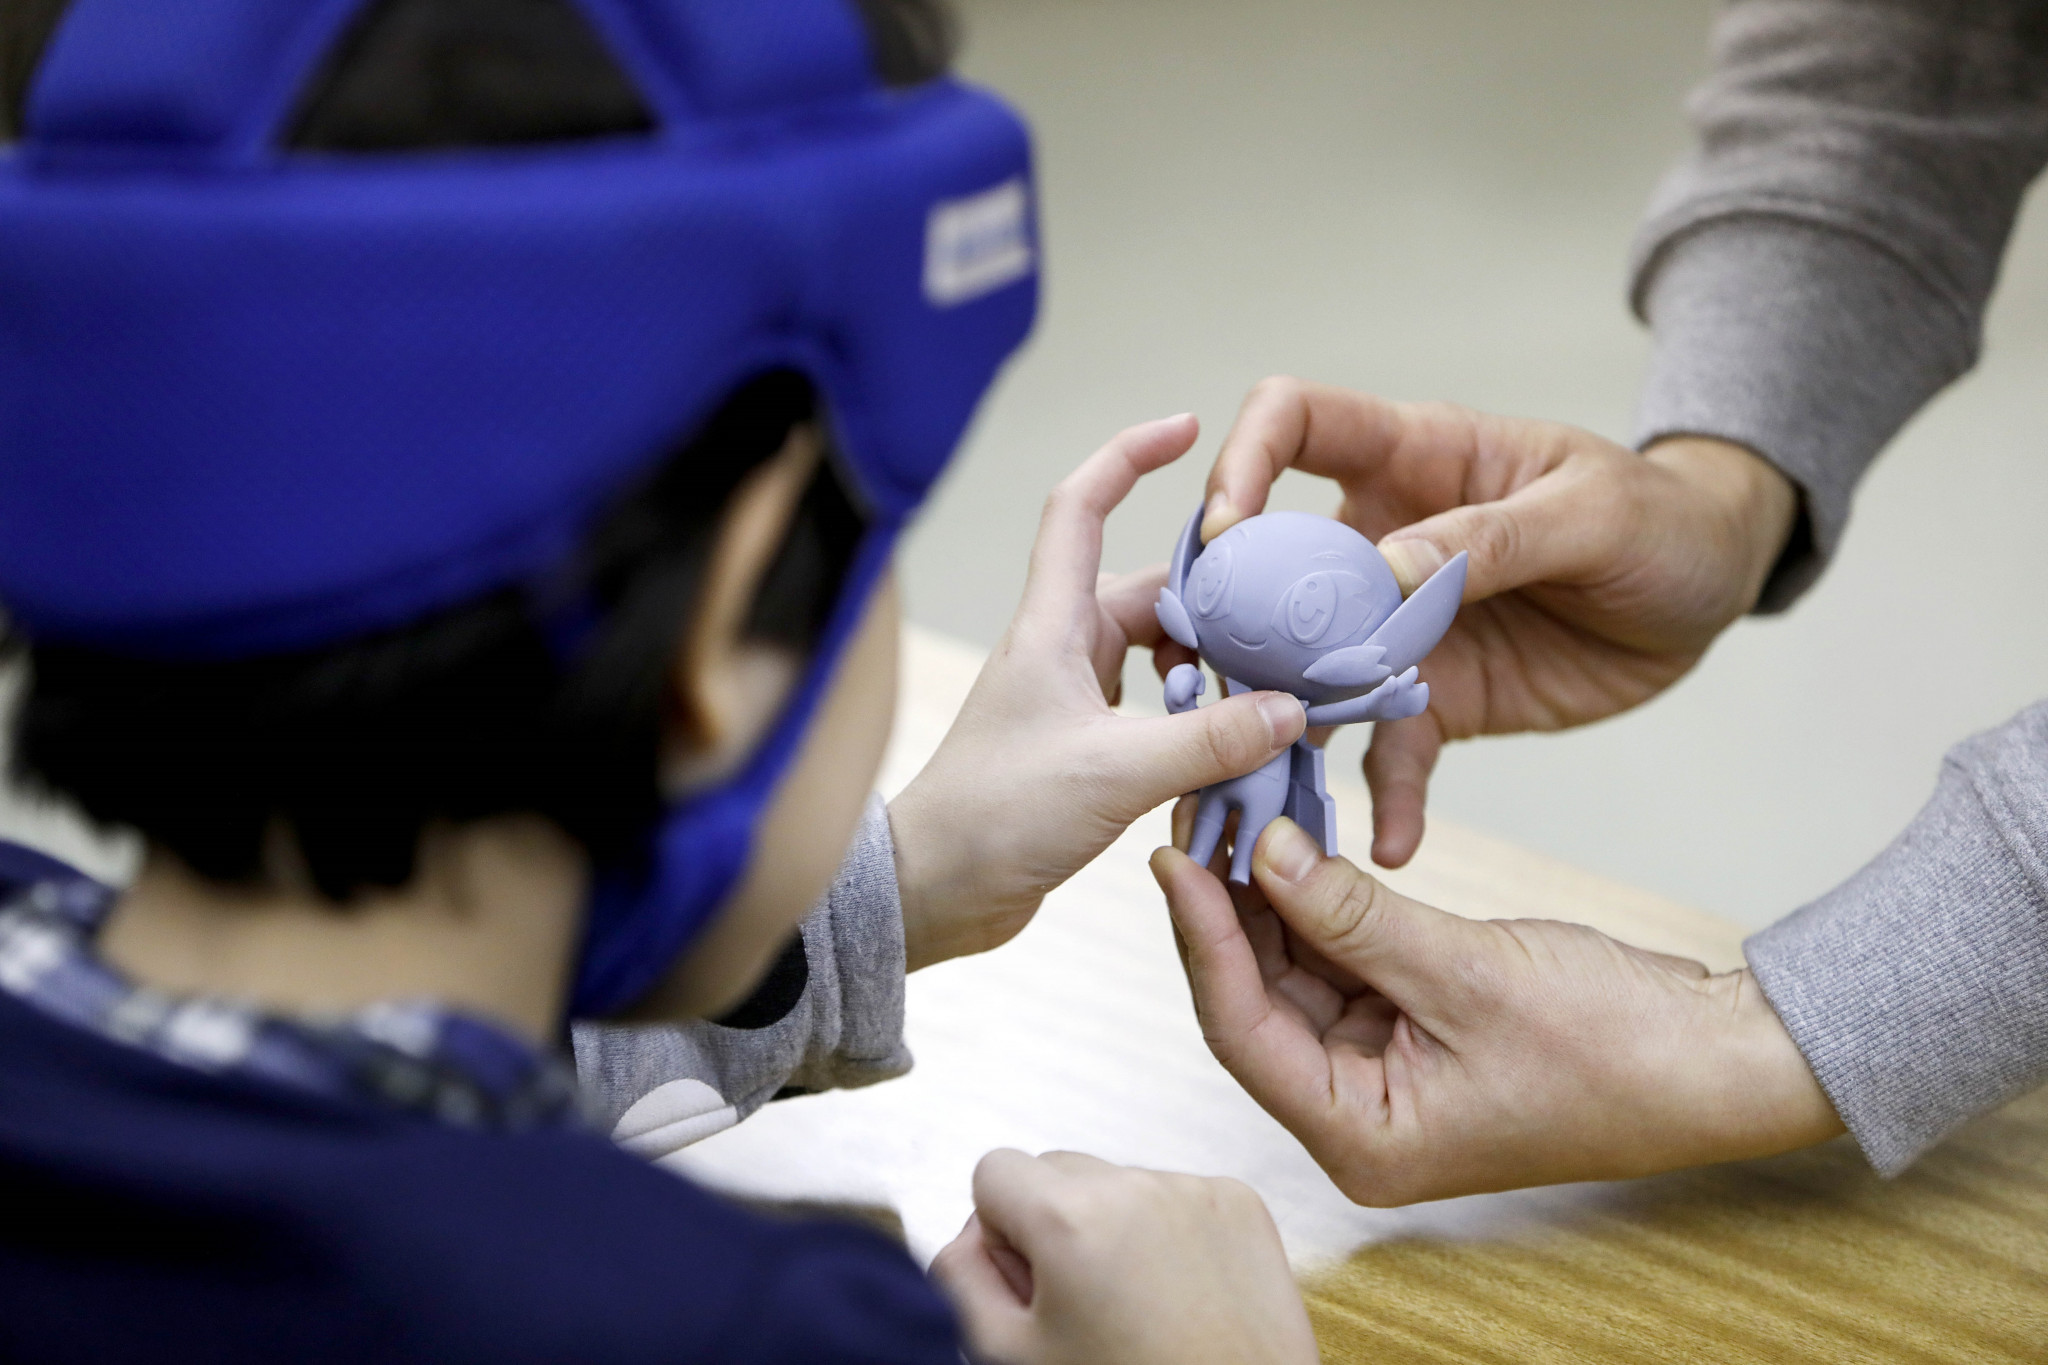 Organisers have created models to help children with impairments be part of the process ©Tokyo 2020